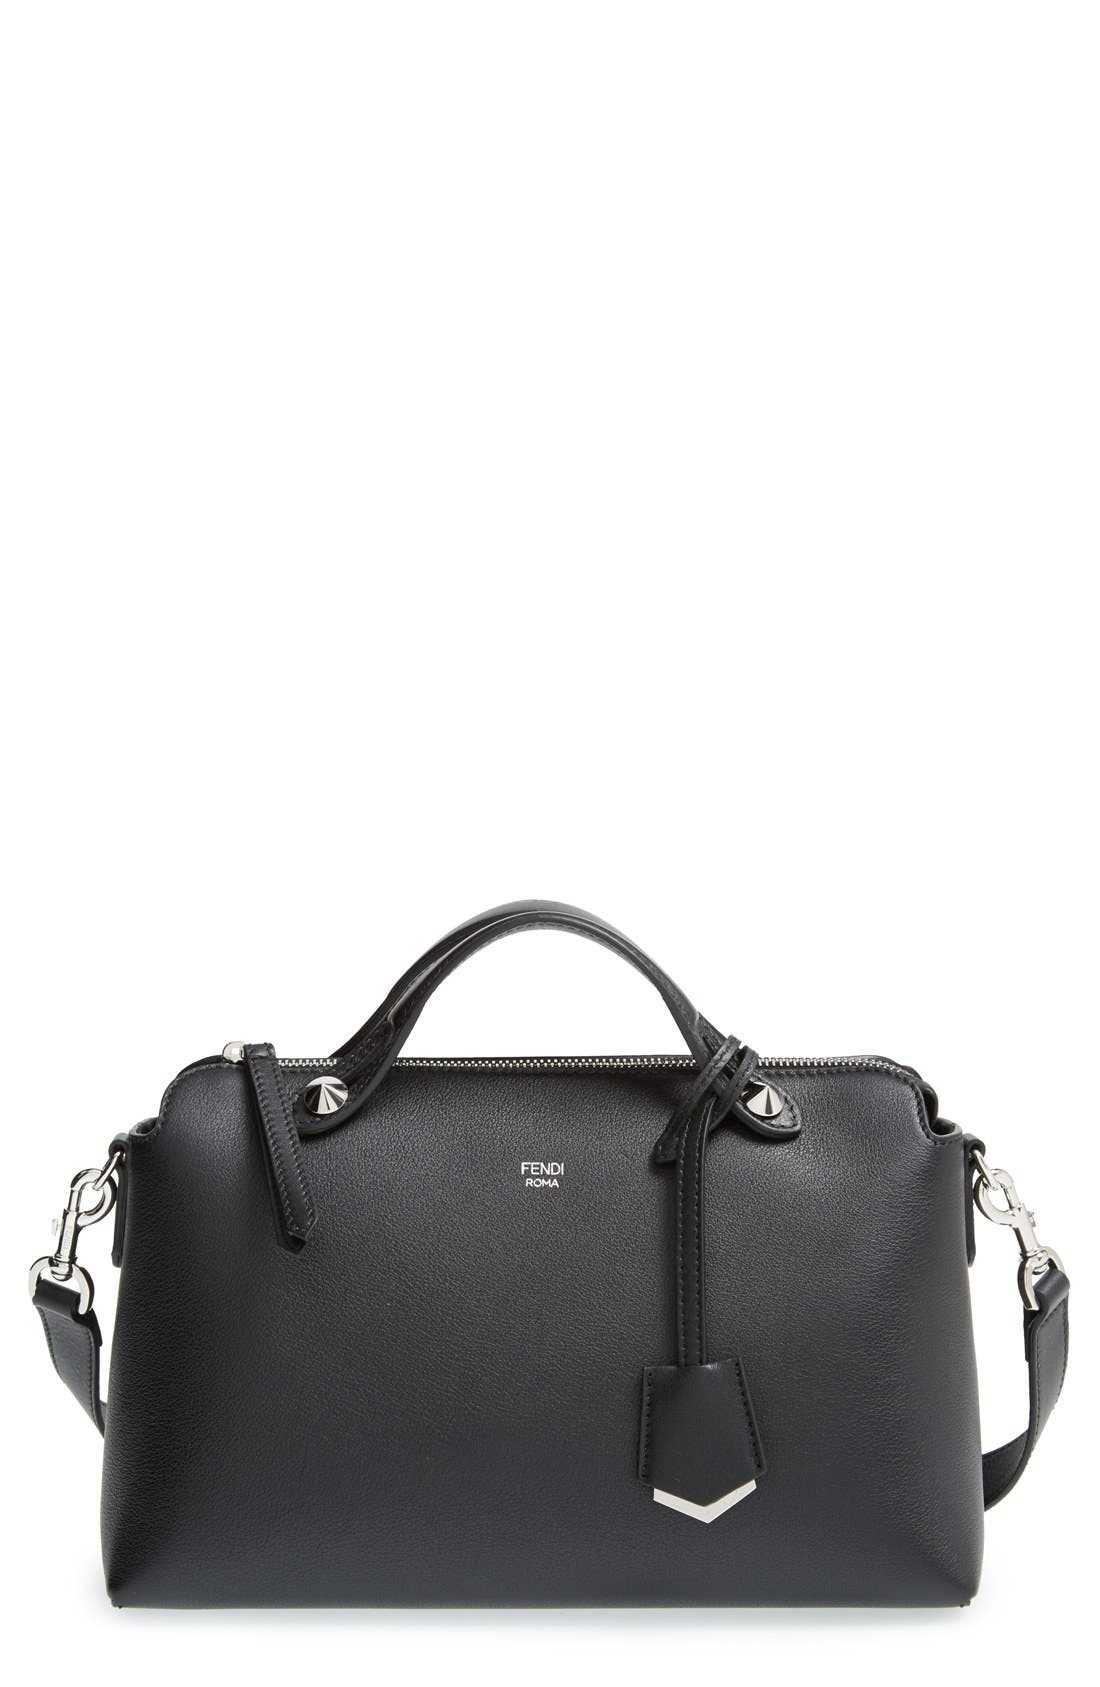 Fendi 'Medium By the Way' Convertible Leather Shoulder Bag